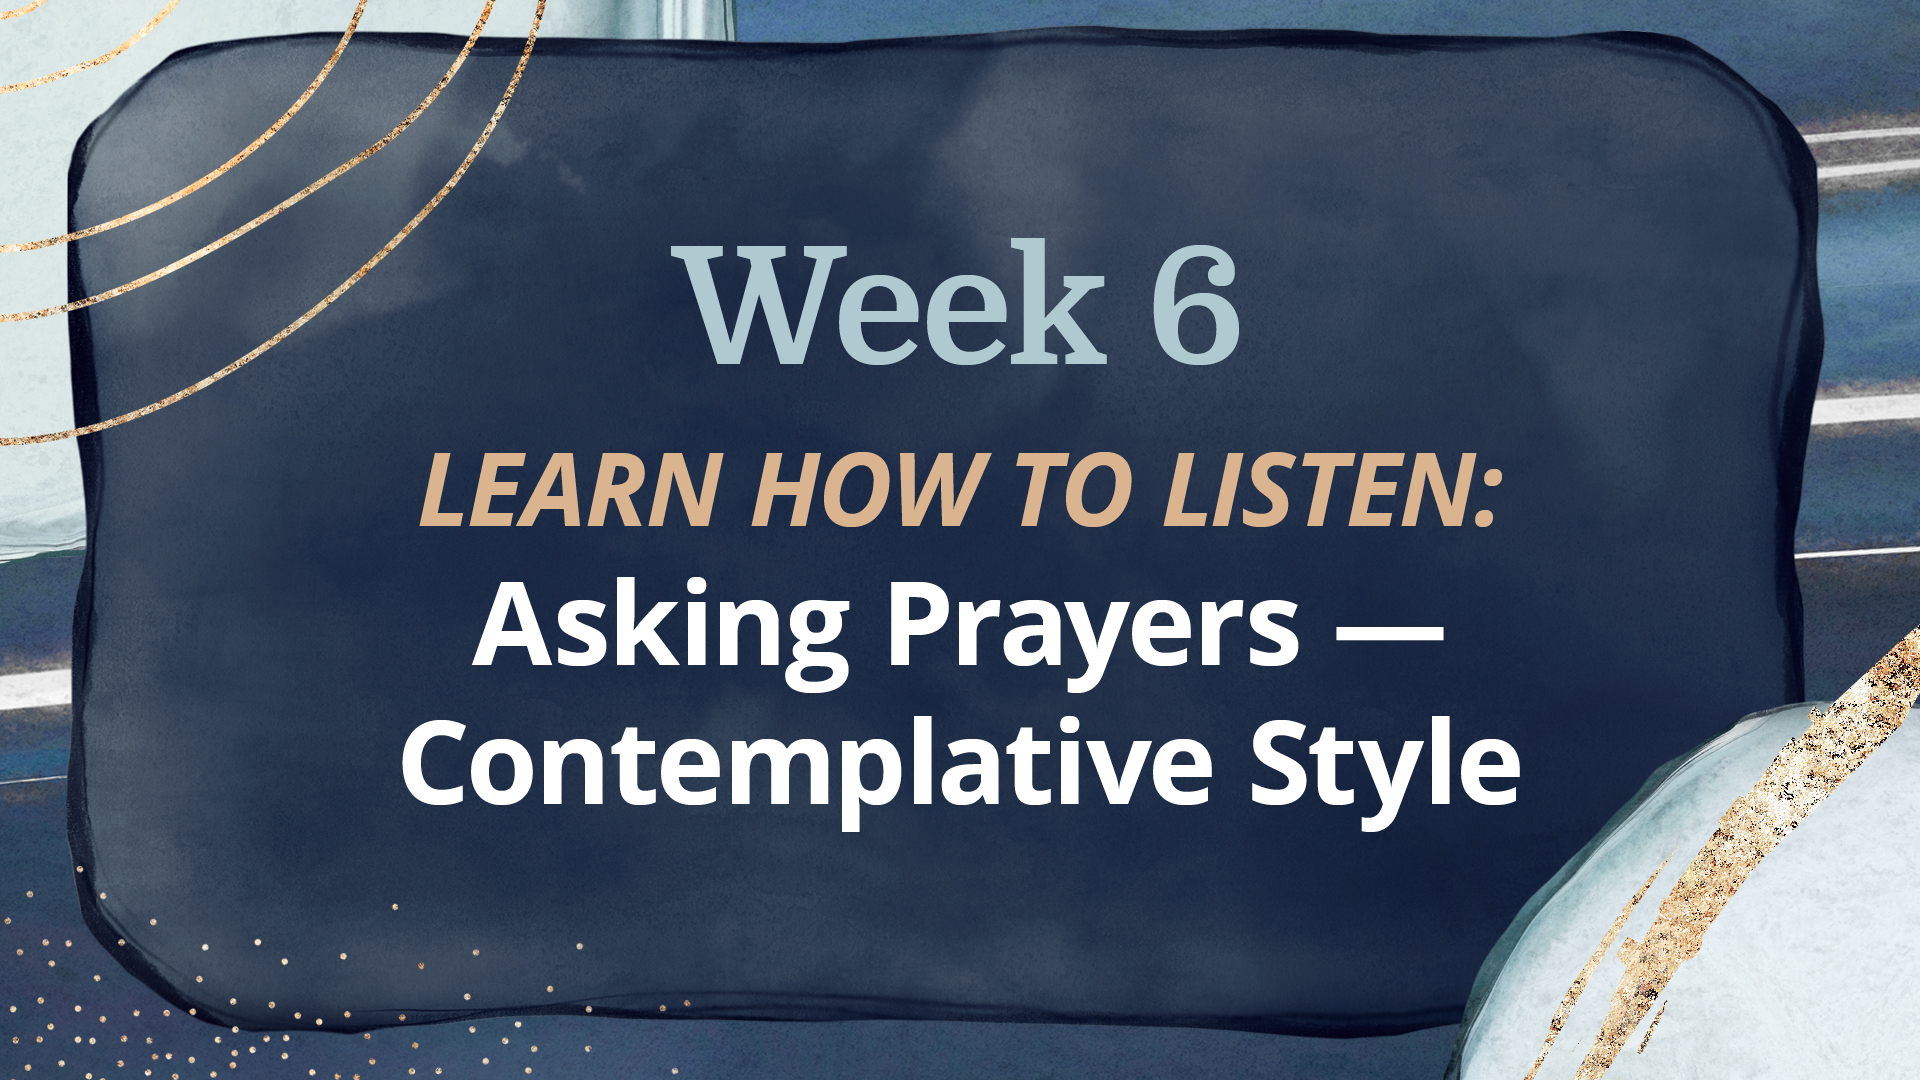 Week 6:Asking Prayers — Contemplative Style